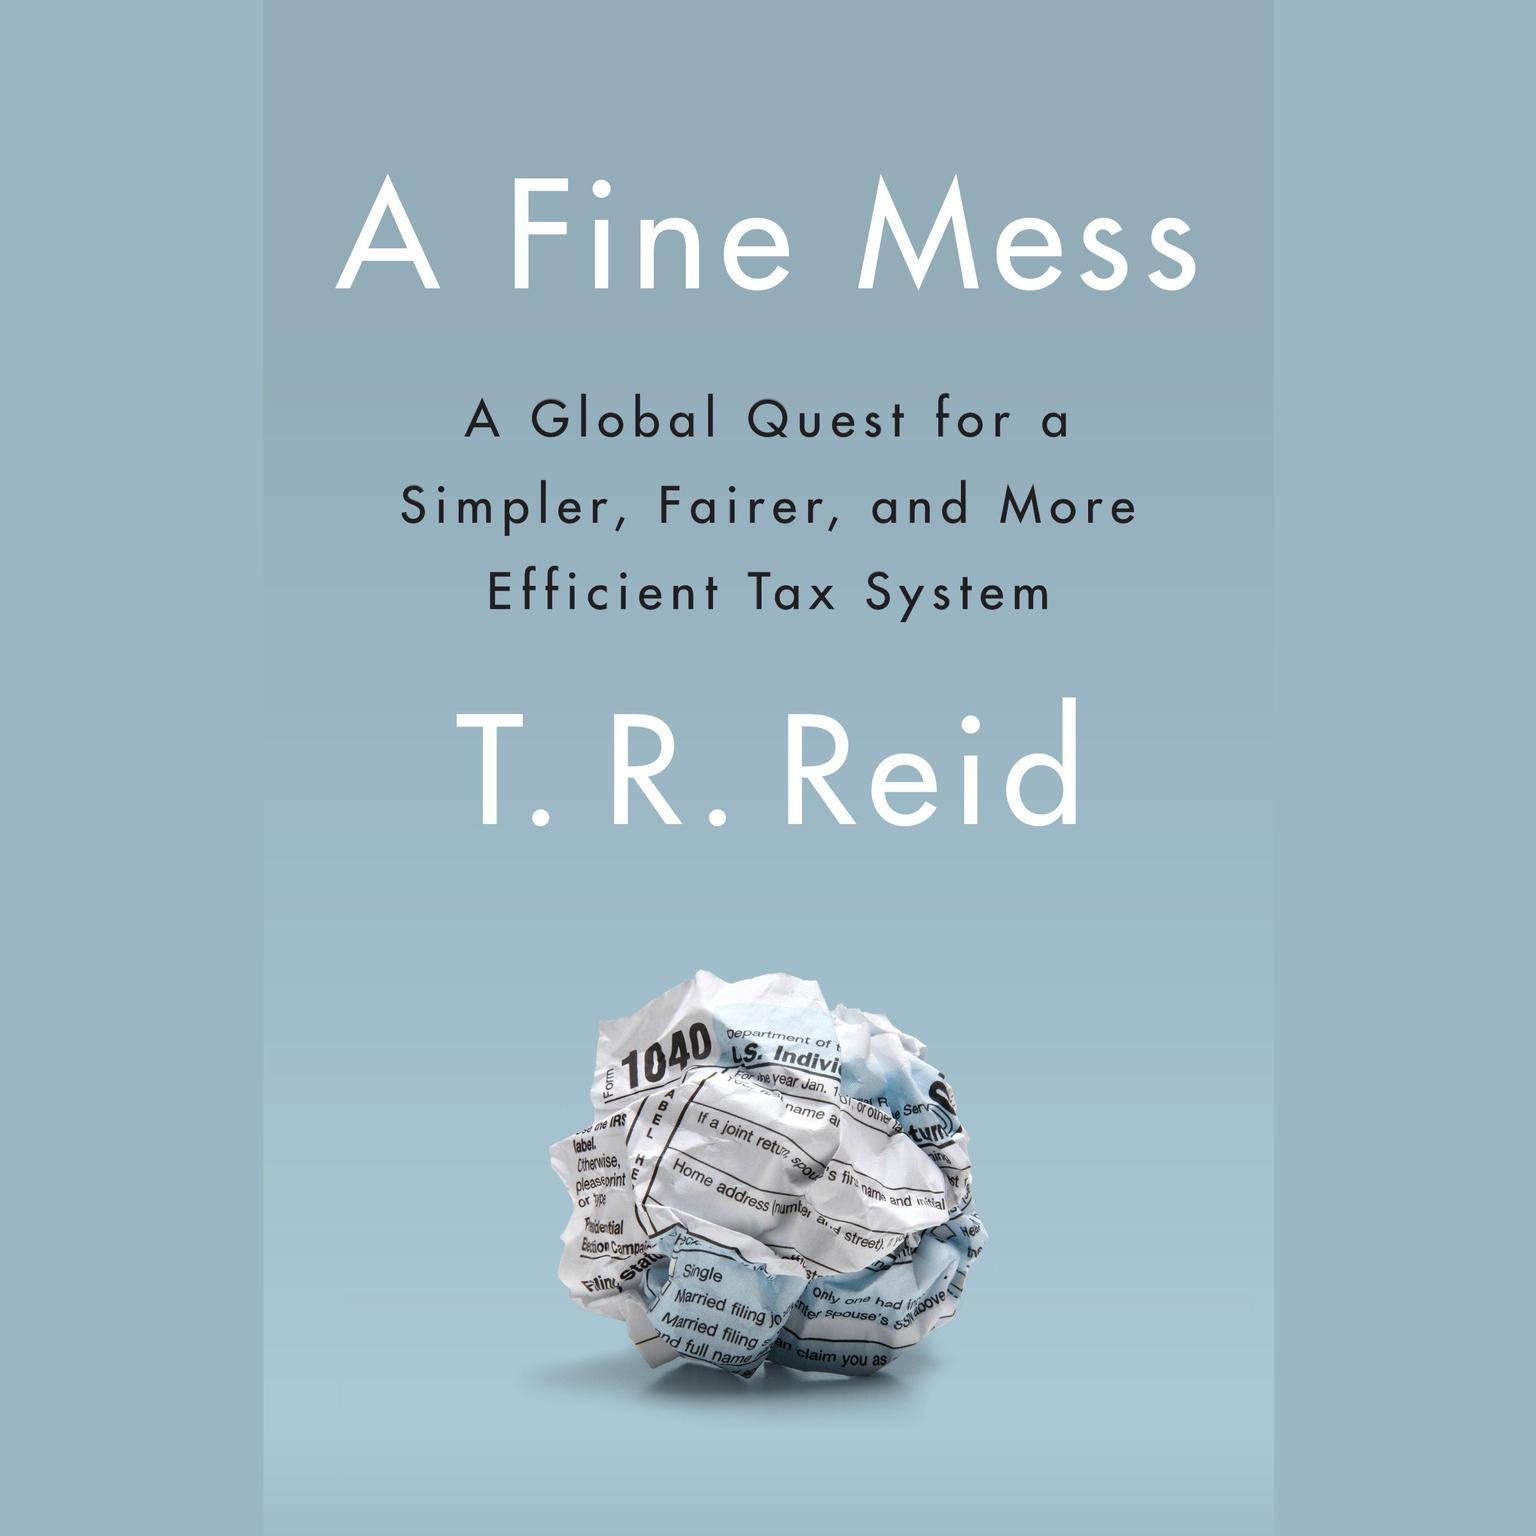 A Fine Mess: A Global Quest for a Simpler, Fairer, and More Efficient Tax System Audiobook, by T. R. Reid